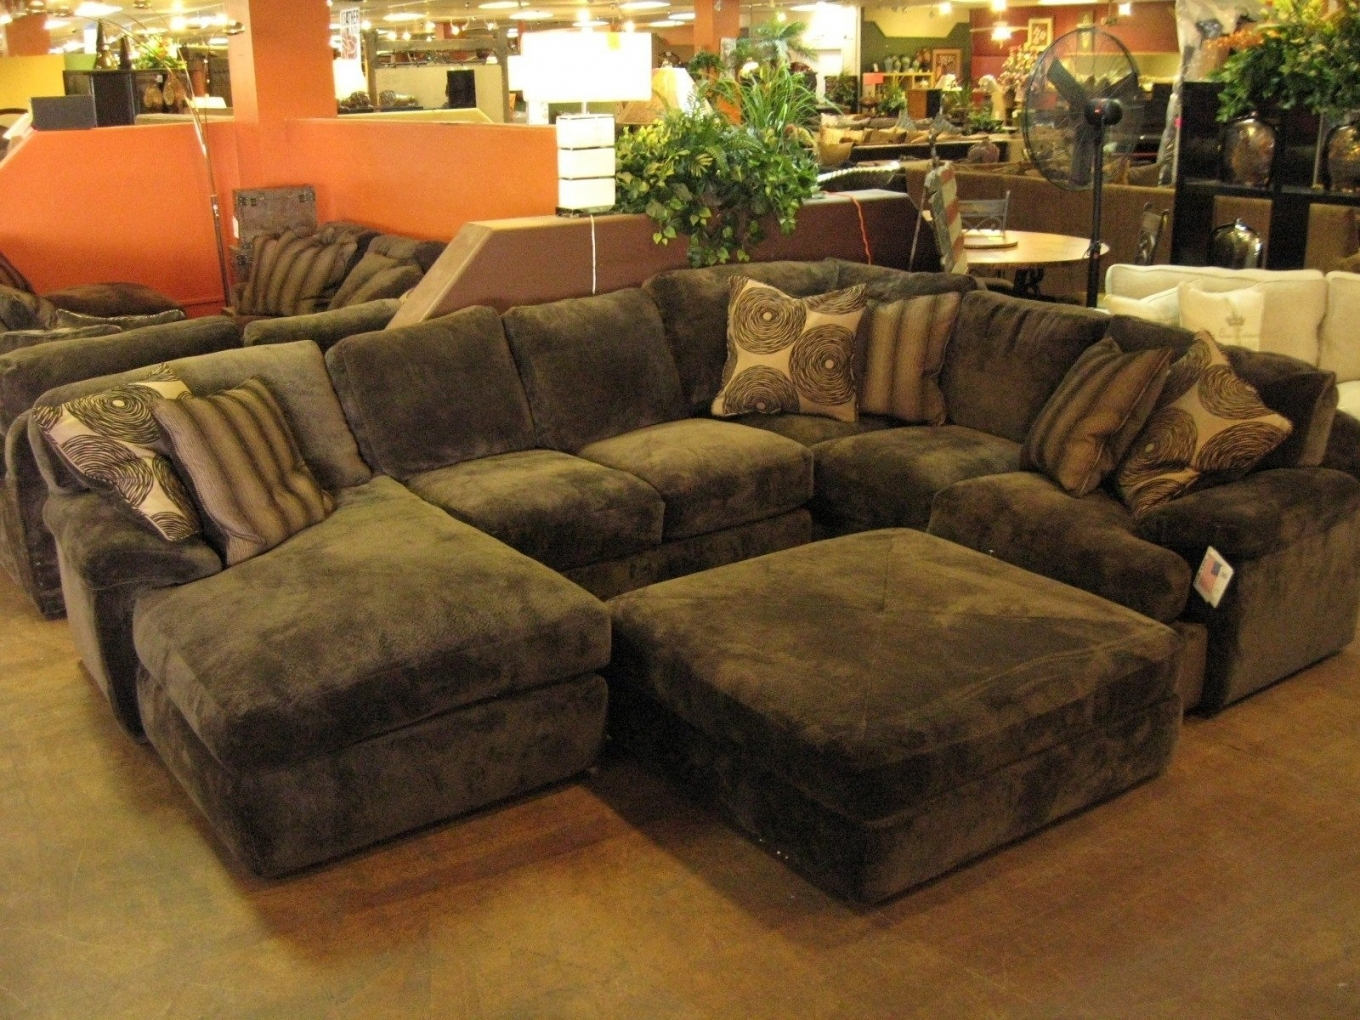 Best Comfy Sectional Sofas 18 For Your Sofas And Couches Ideas With Intended For Comfy Sectional Sofas (View 3 of 10)